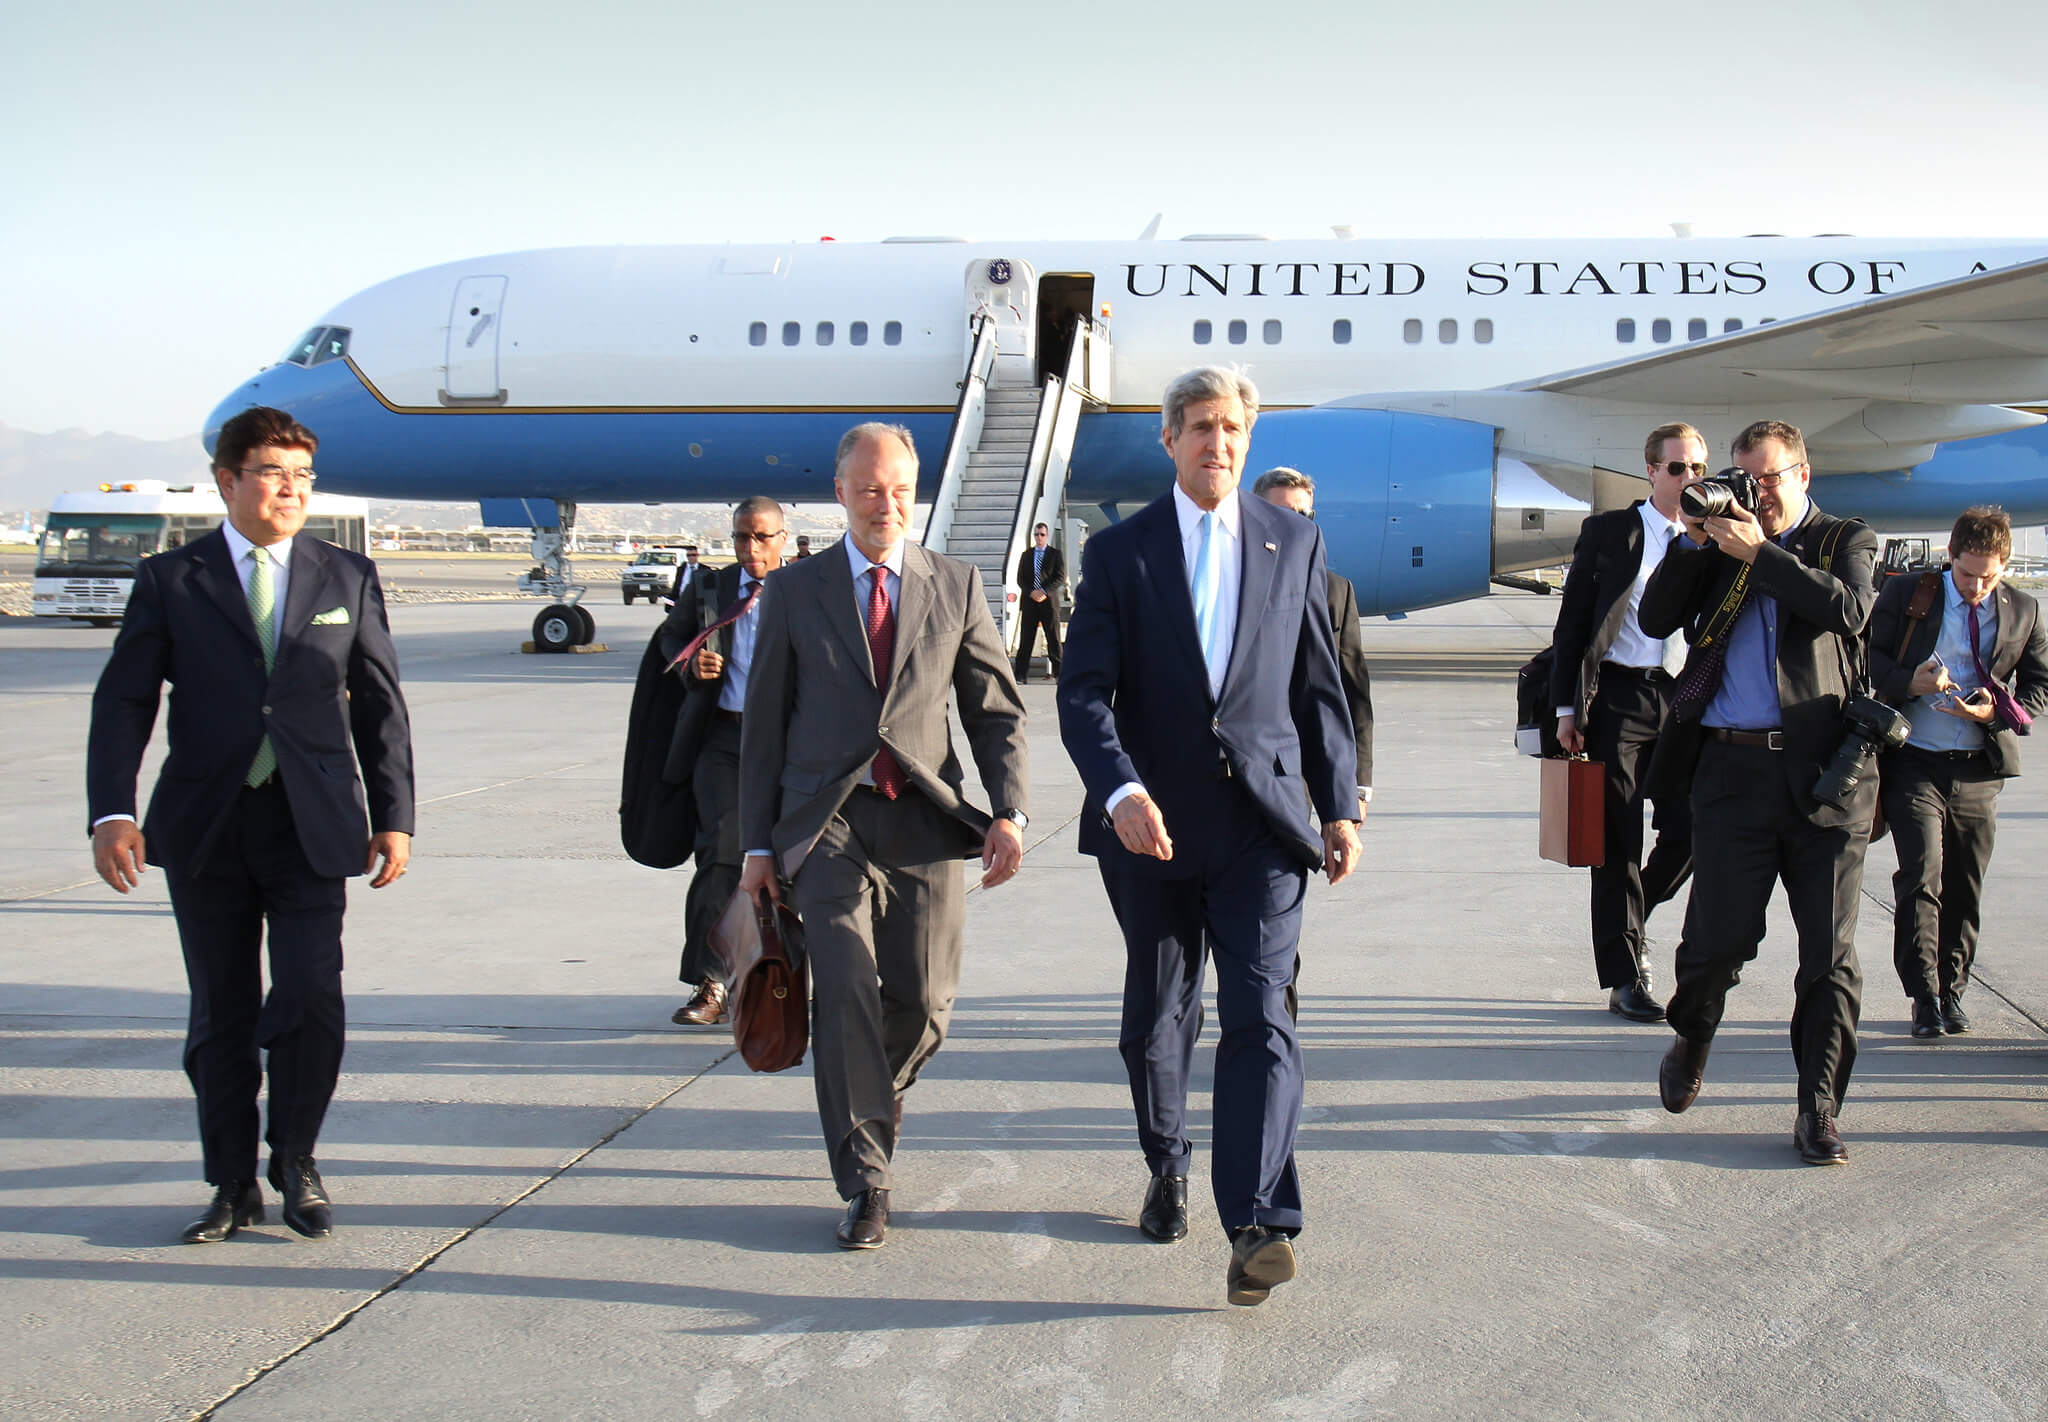 United States Secretary of State John Kerry arrives in Kabul to meet with Abdullah Abdullah, Ashraf Ghani and Hamid Karzai in august 2014. ©US embassy of Kabul, Afghanistan/Flickr